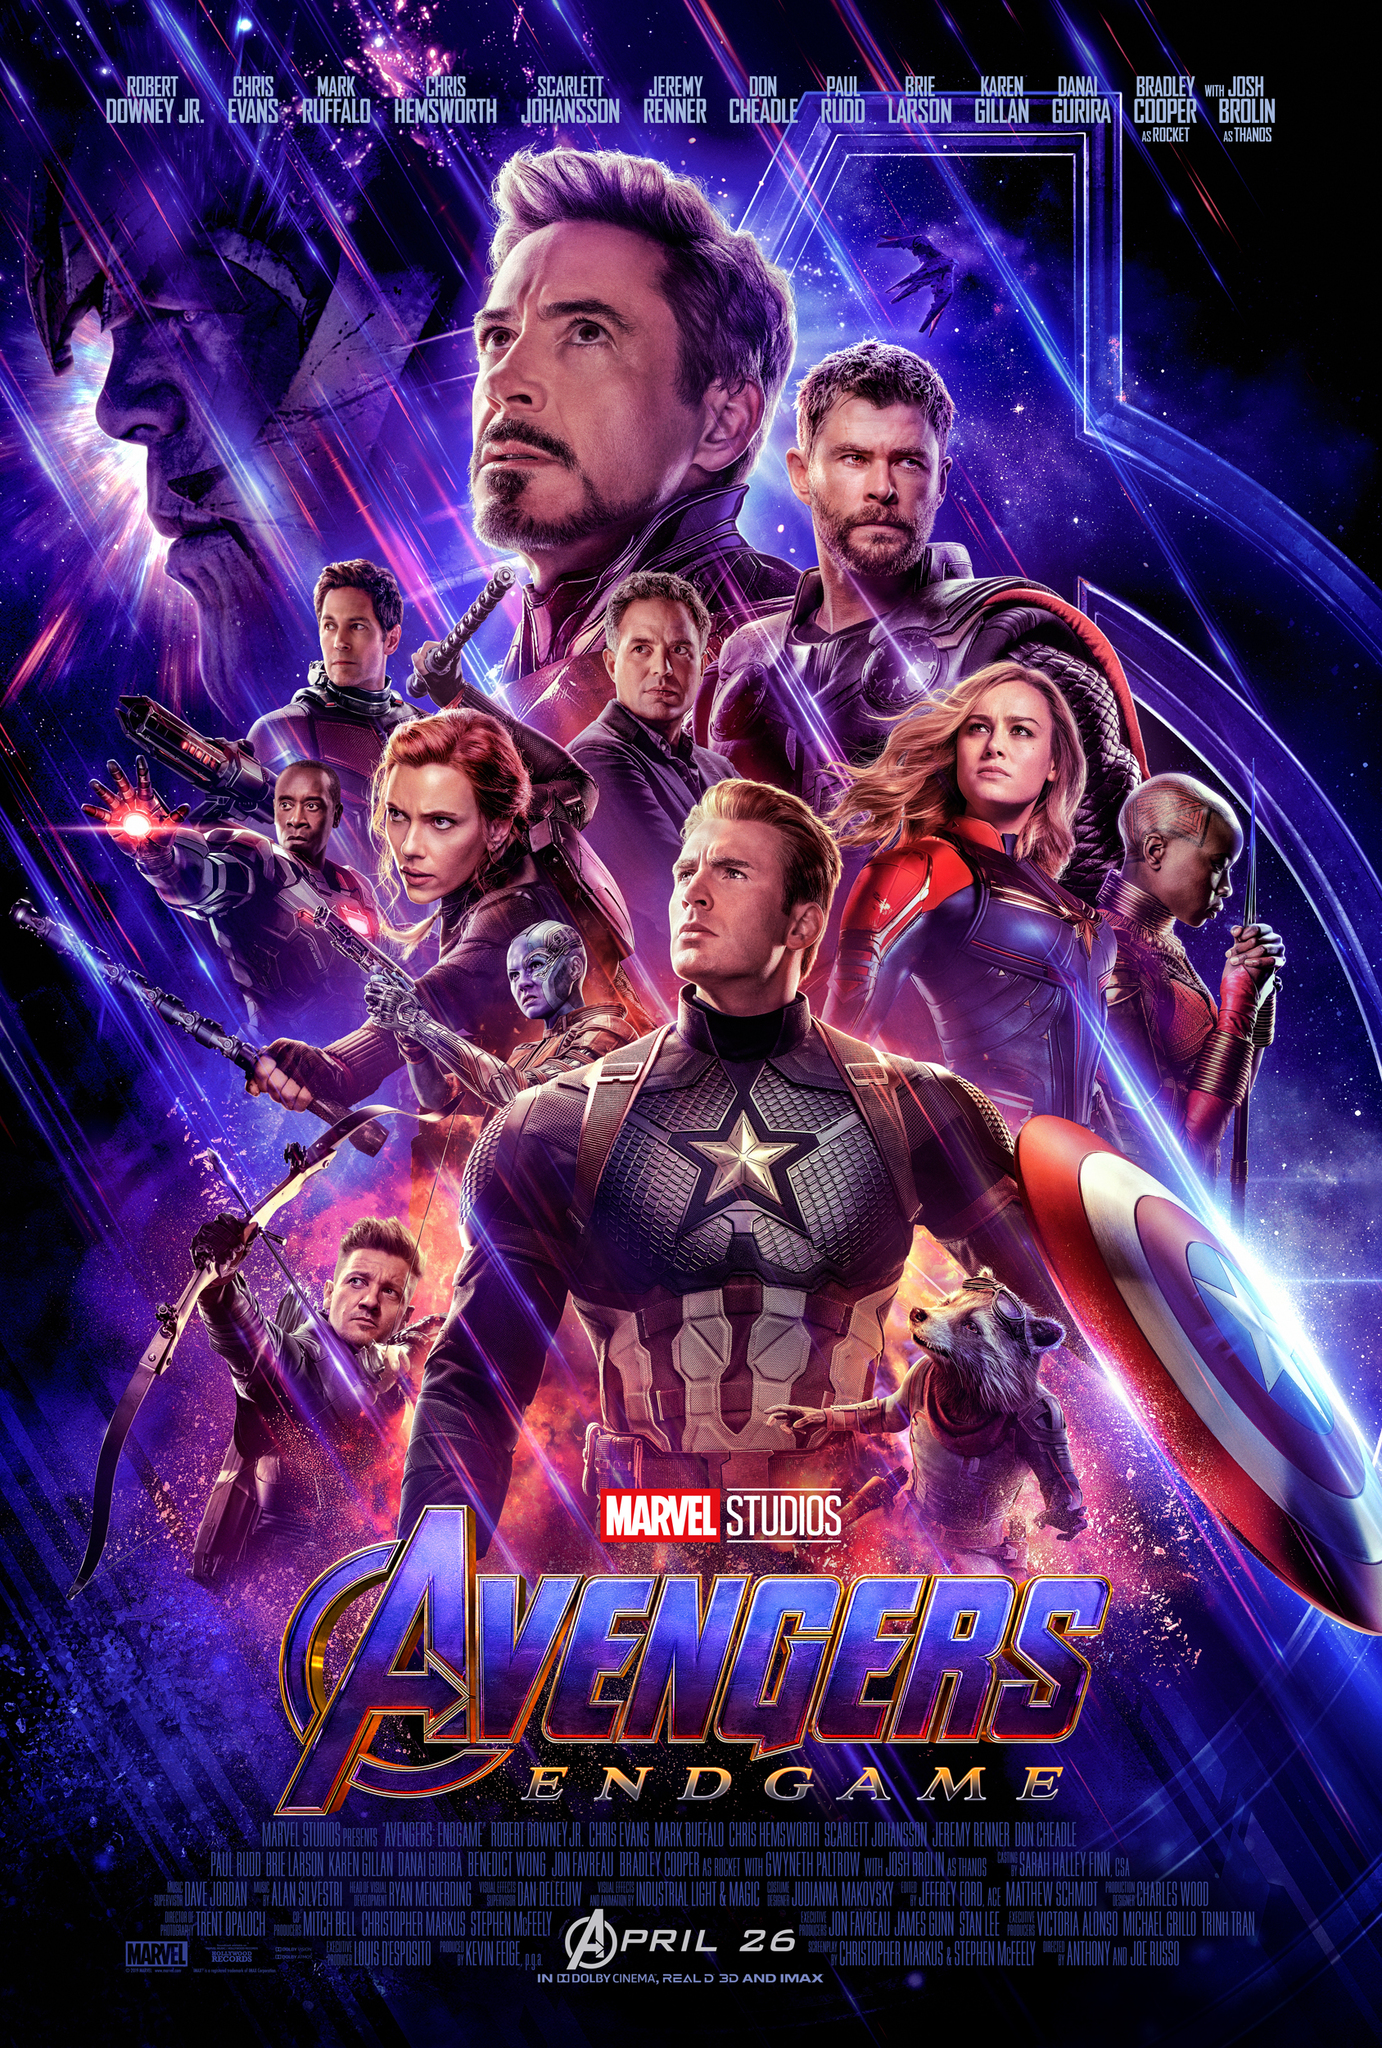 Avengers Endgame 2019 720p HDCAM V2 Dual Audio 1.2GB Hindi-English x264 CineVood Exclusive